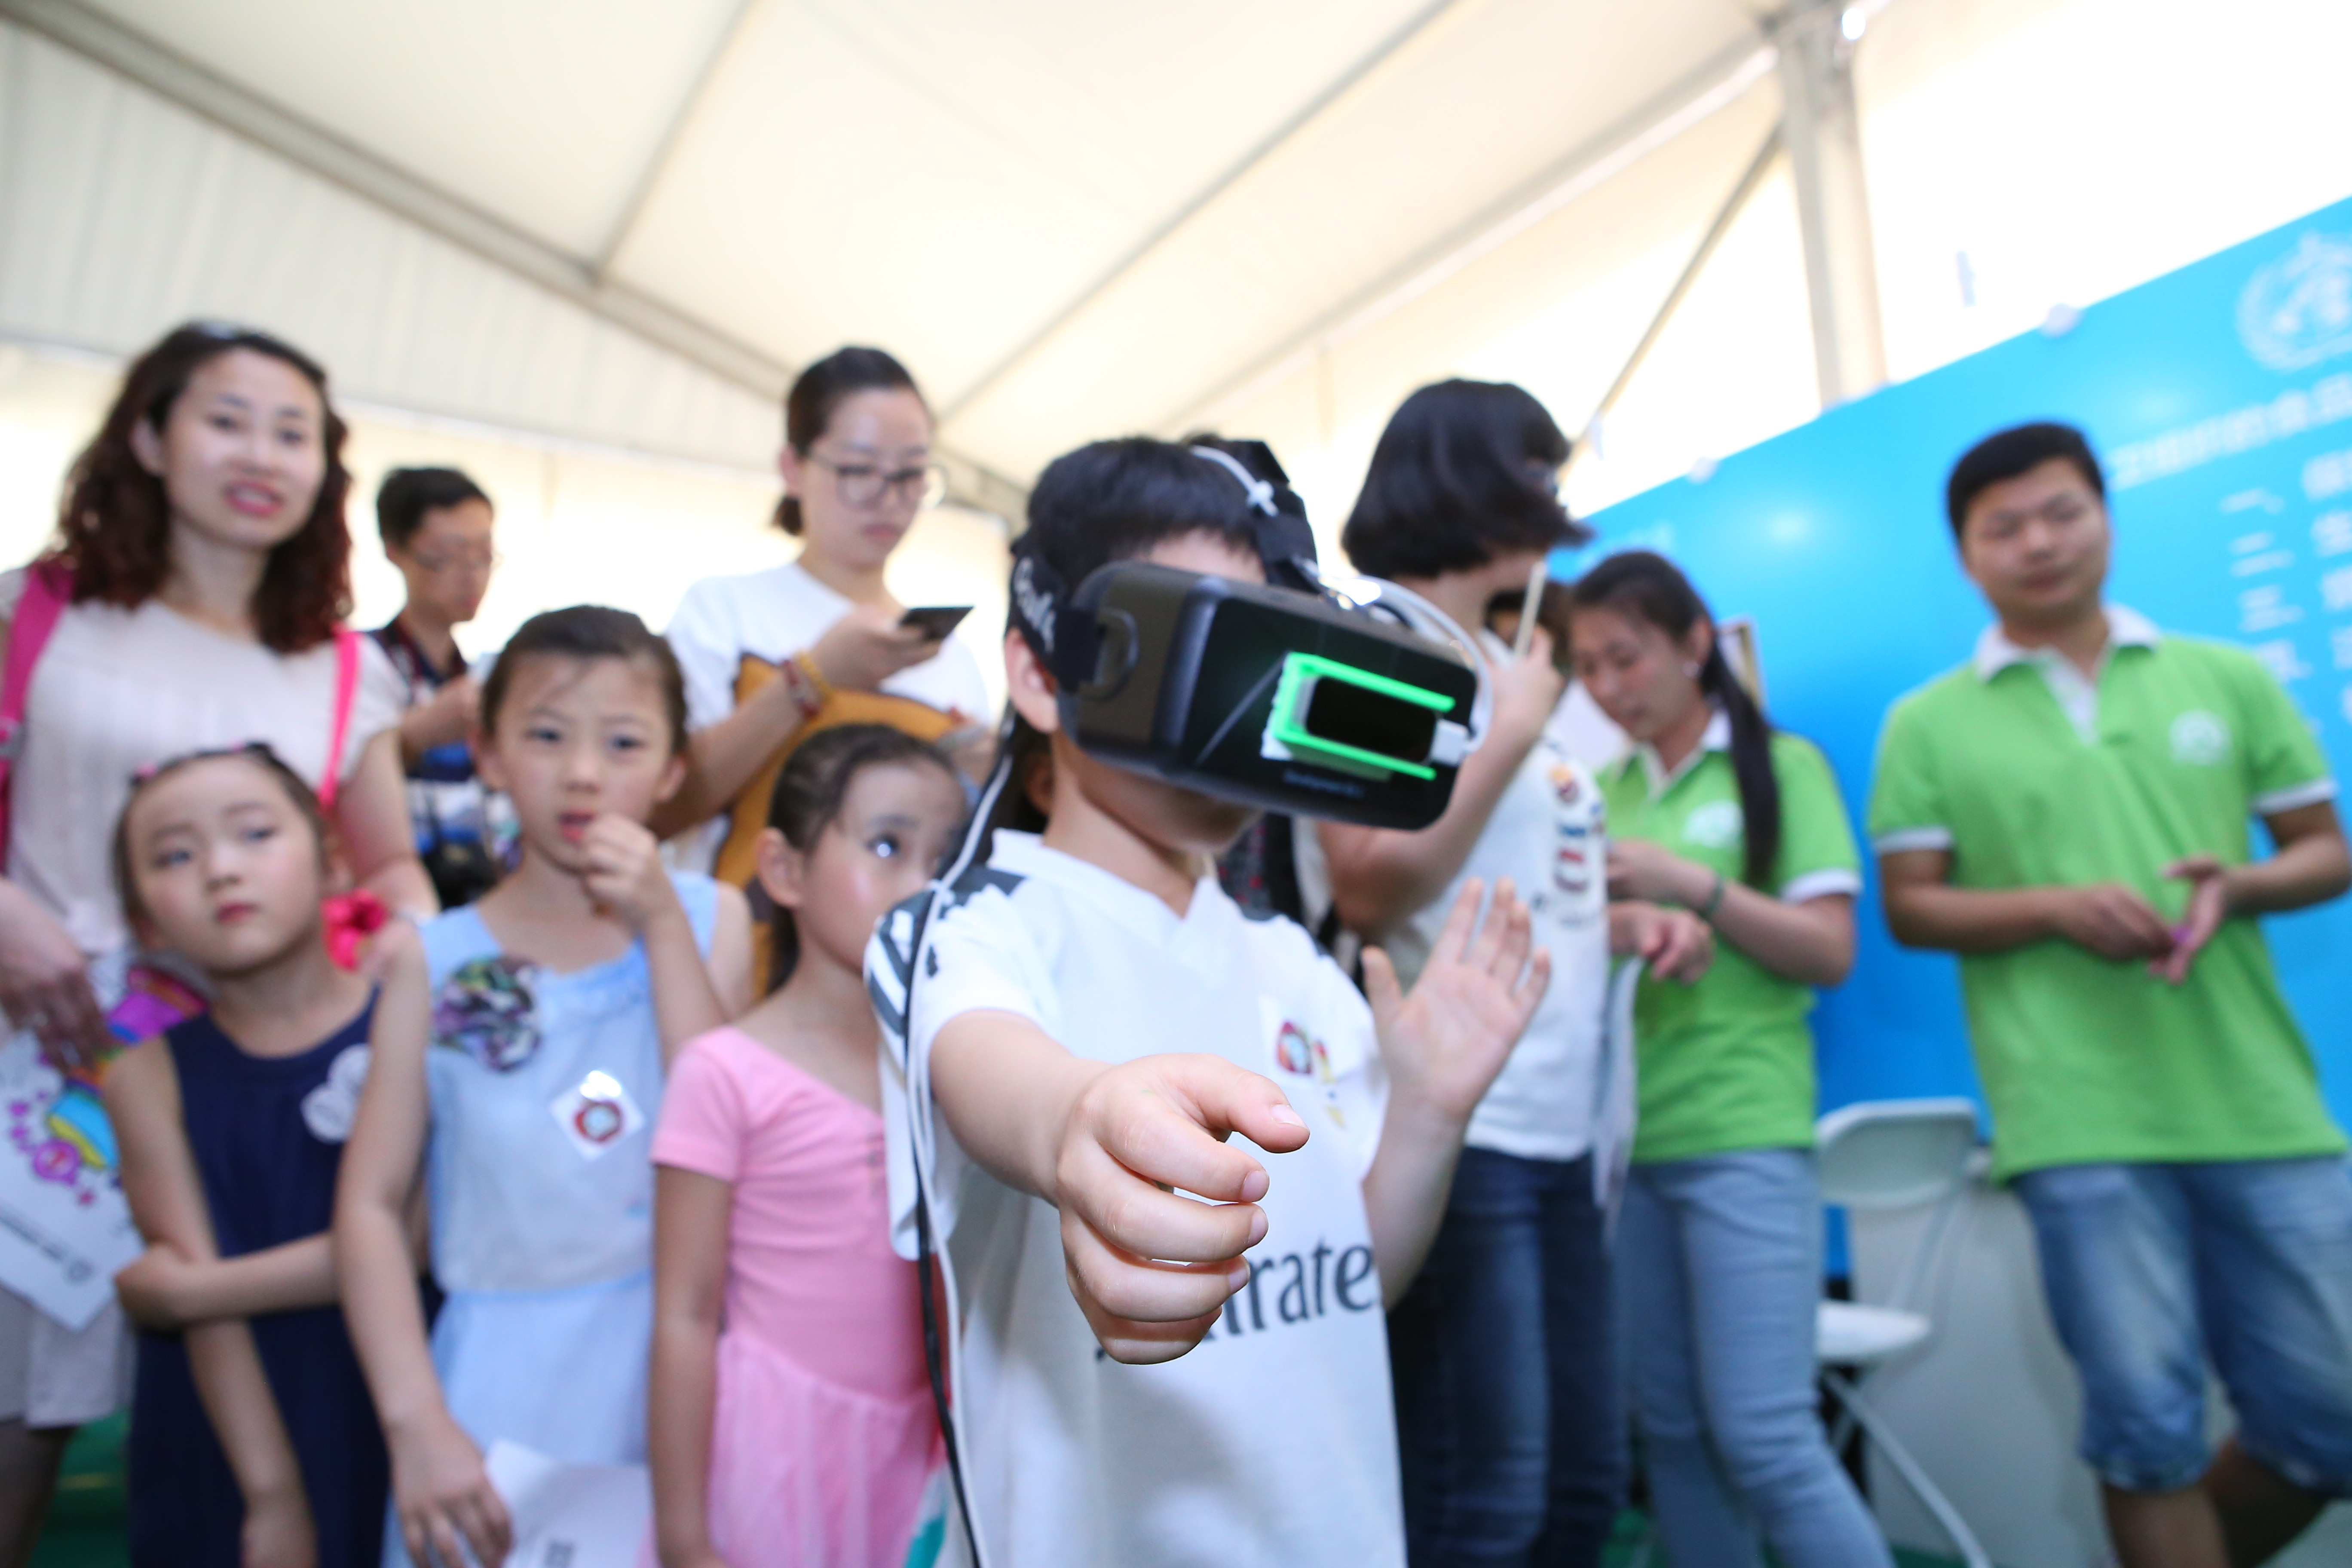 China Children's Food Safety Protection Campaign Launch - VR